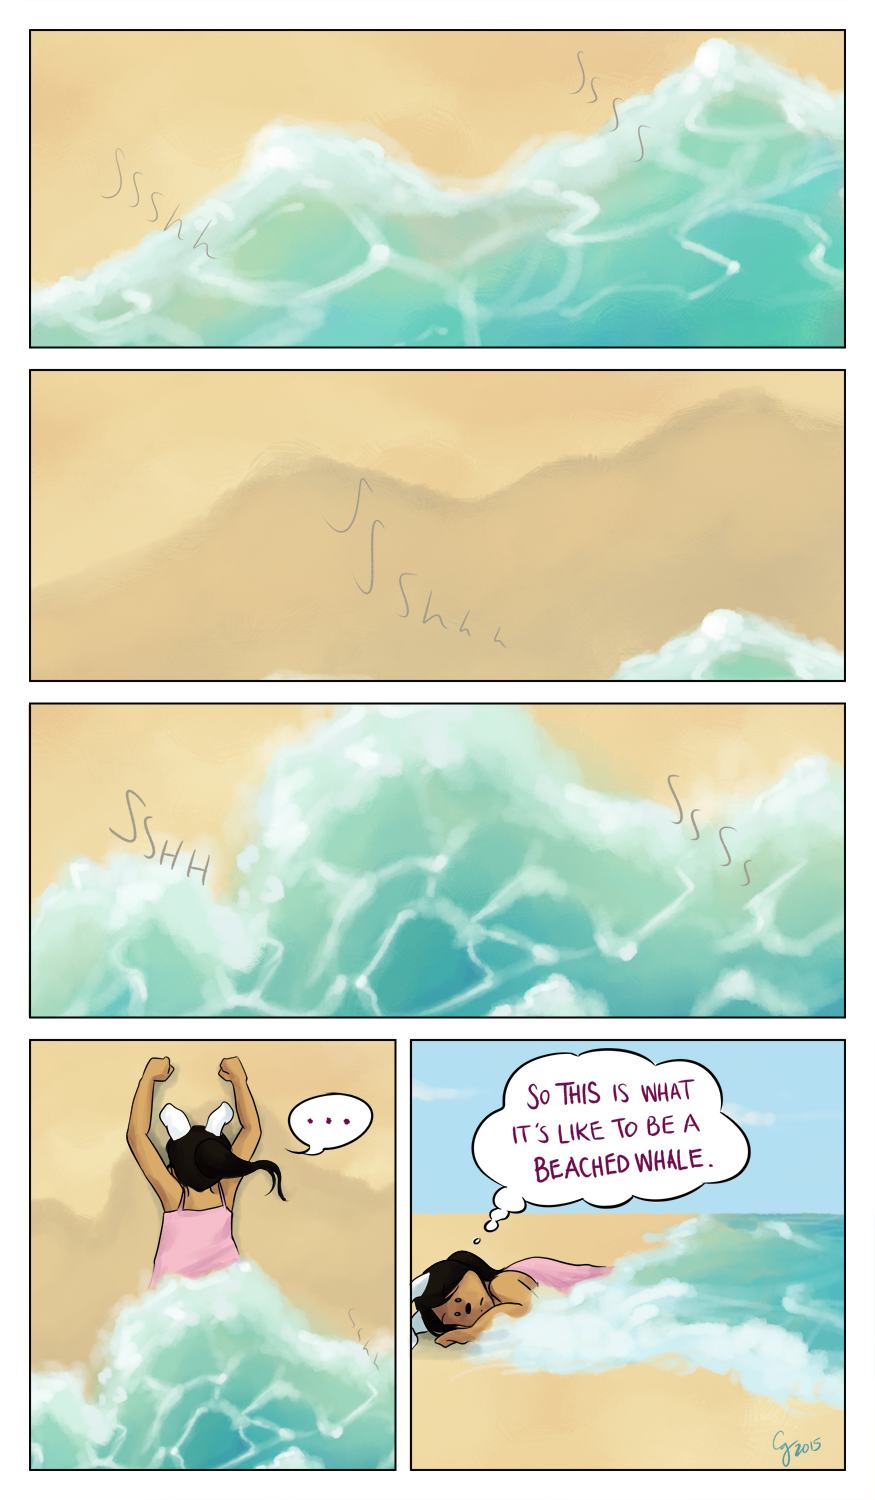 084 Beach Thoughts